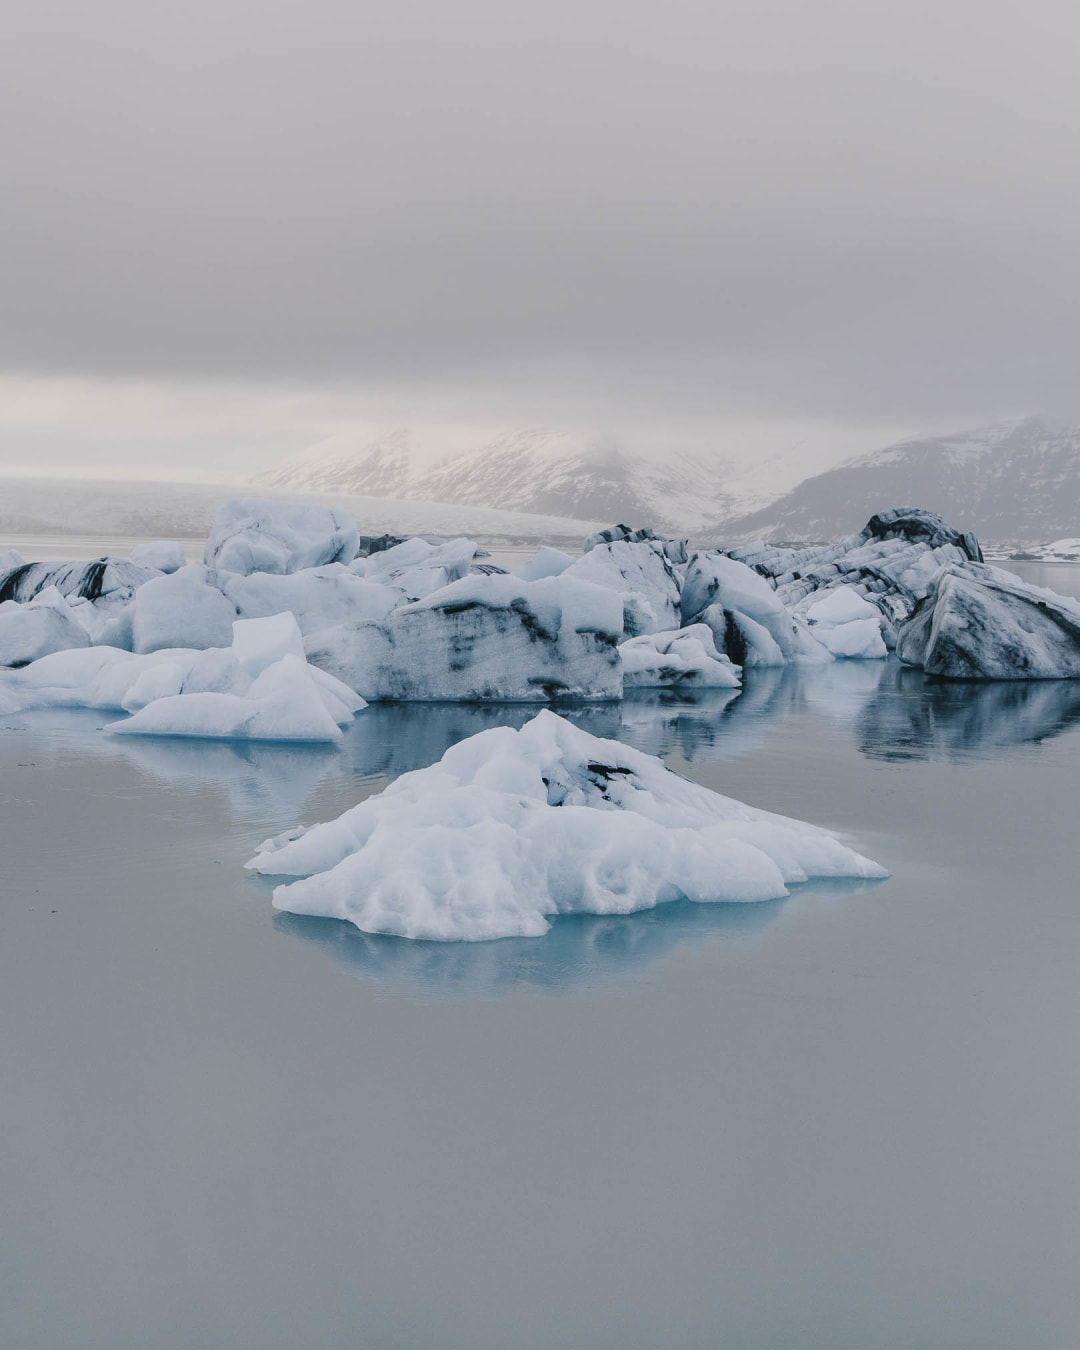 A small floating iceberg at Glacier Lagoon landscape photography of Iceland